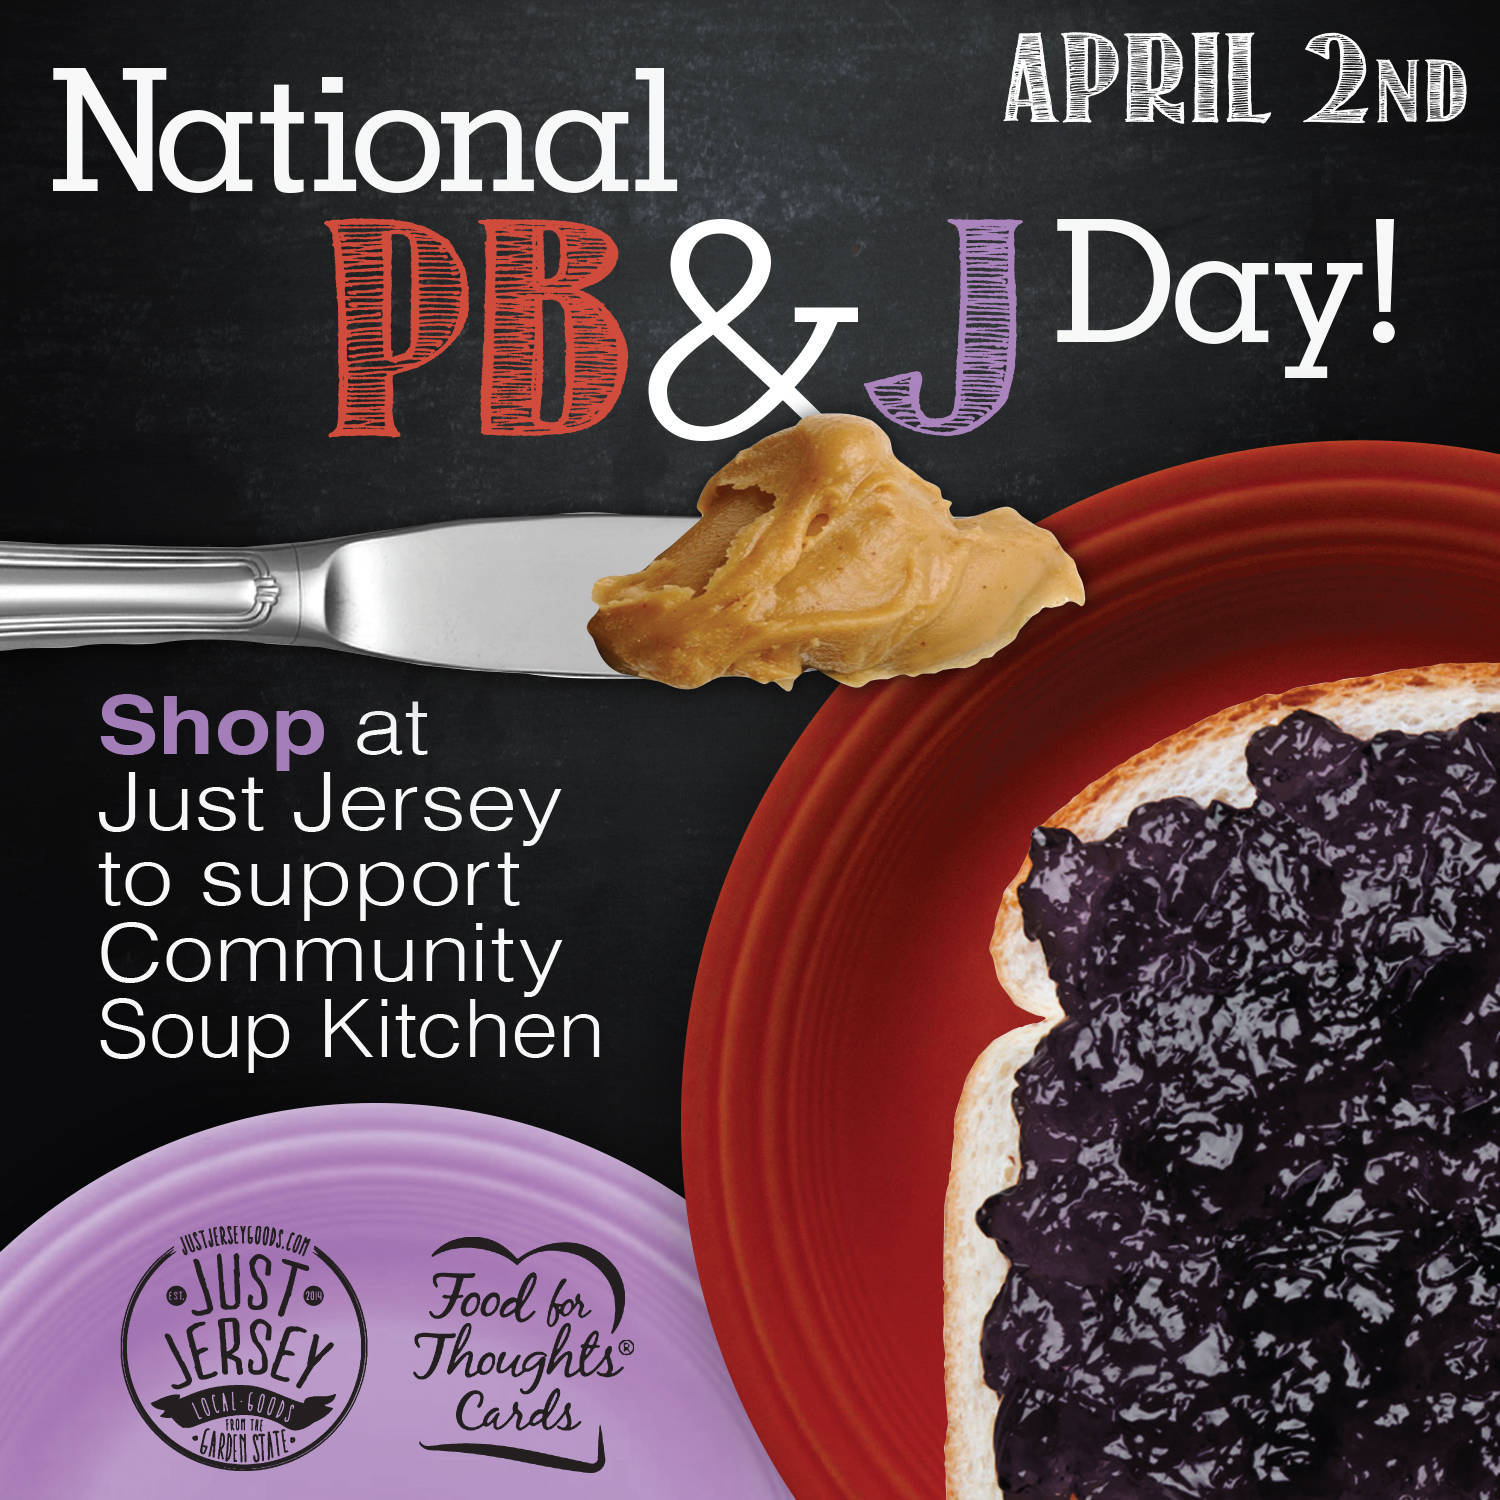 On National PB & J Day, Shop Local To Support Morristown's